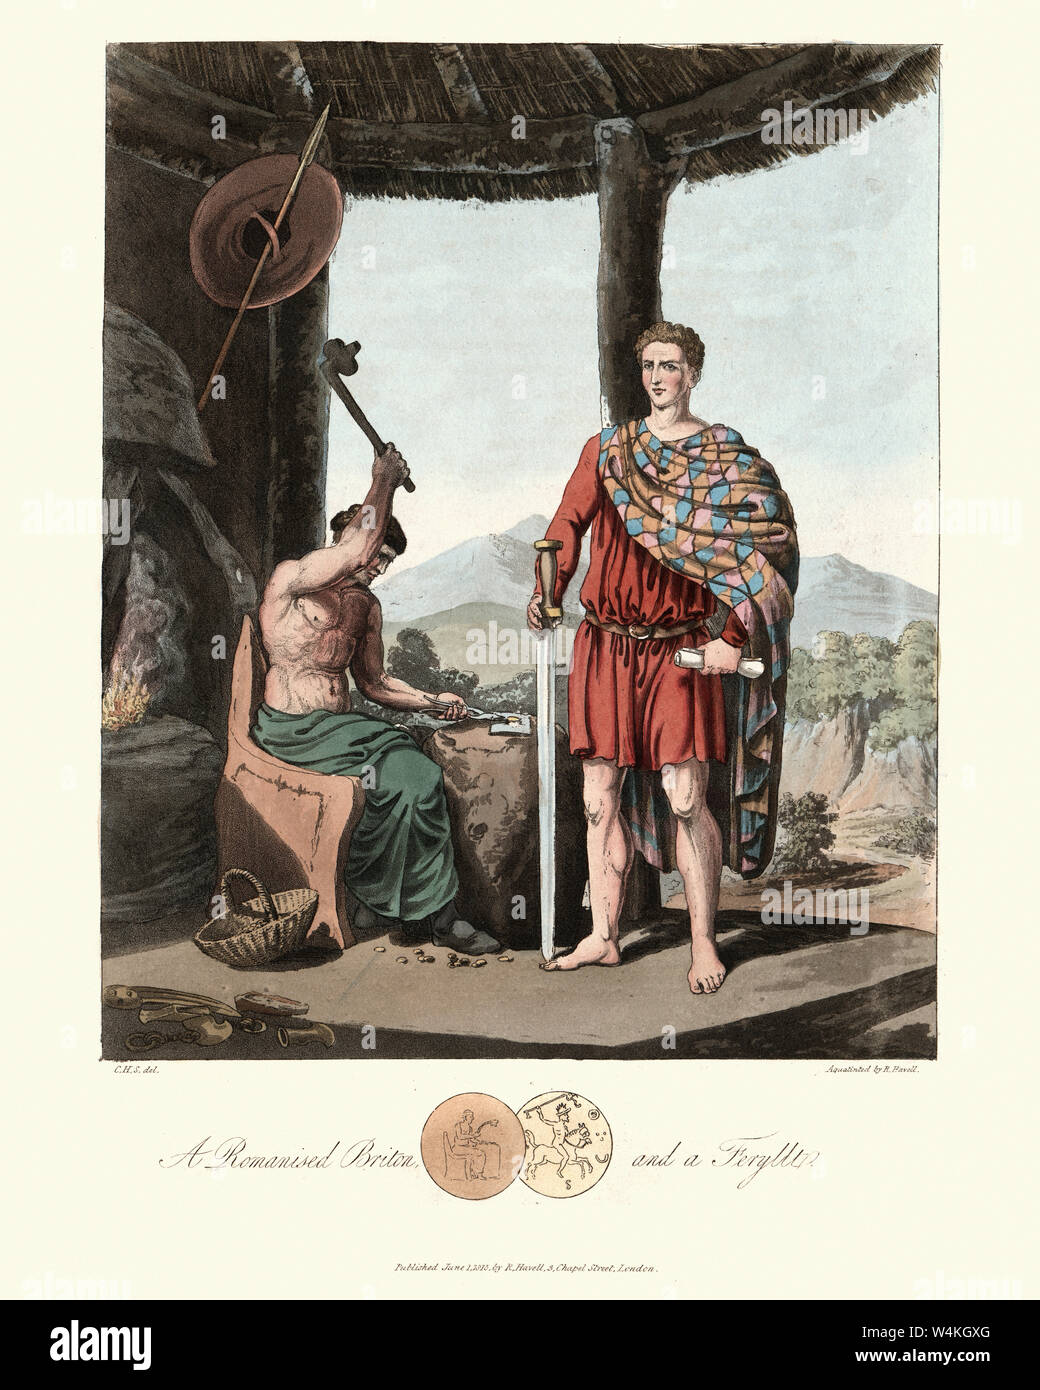 Vintage engraving of Romanised Briton and a Fferyllt. 1815, The Costume of the Original Inhabitants of the British Islands, by MEYRICK, Samuel Rush an Stock Photo